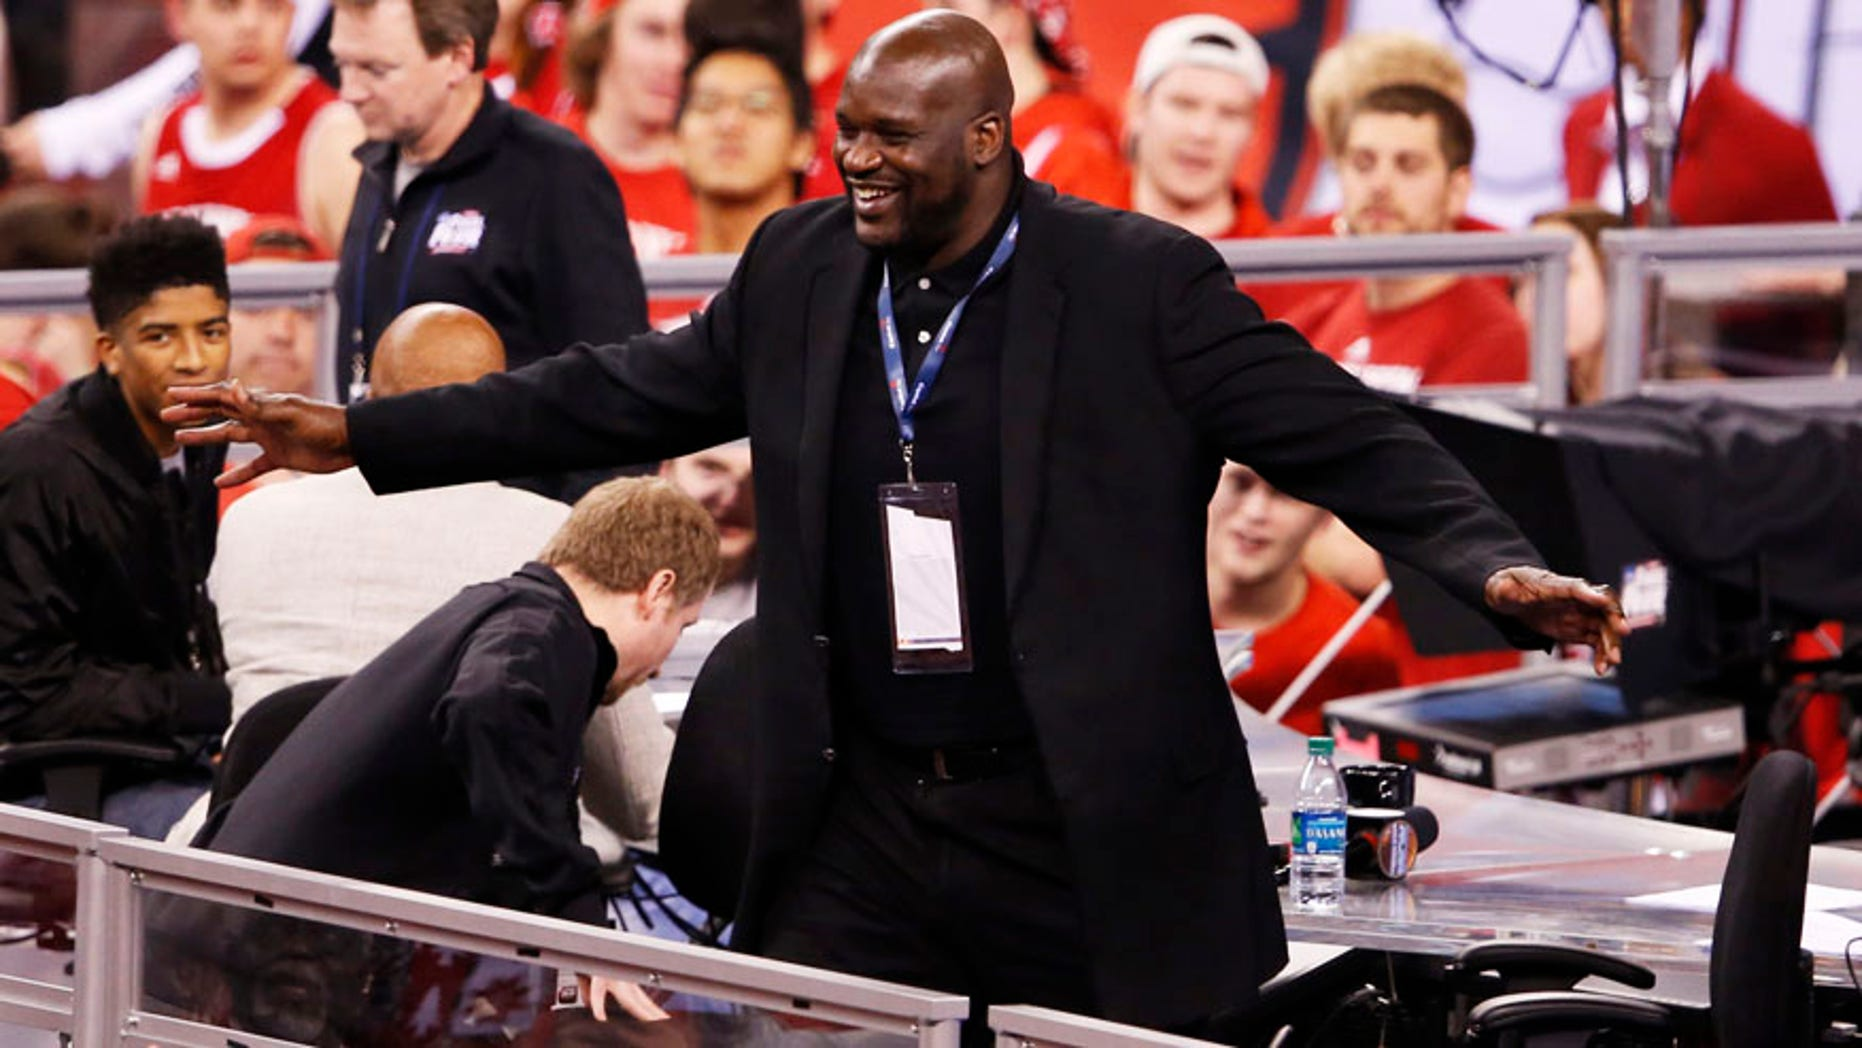 Apr 4, 2015; Indianapolis, IN, USA; Former basketball player Shaquille O'Neal greets fans during the second half of the 2015 NCAA Men's Division I Championship semi-final game between the Kentucky Wildcats and the Wisconsin Badgers at Lucas Oil Stadium. Mandatory Credit: Brian Spurlock-USA TODAY Sports - RTR4W4T2